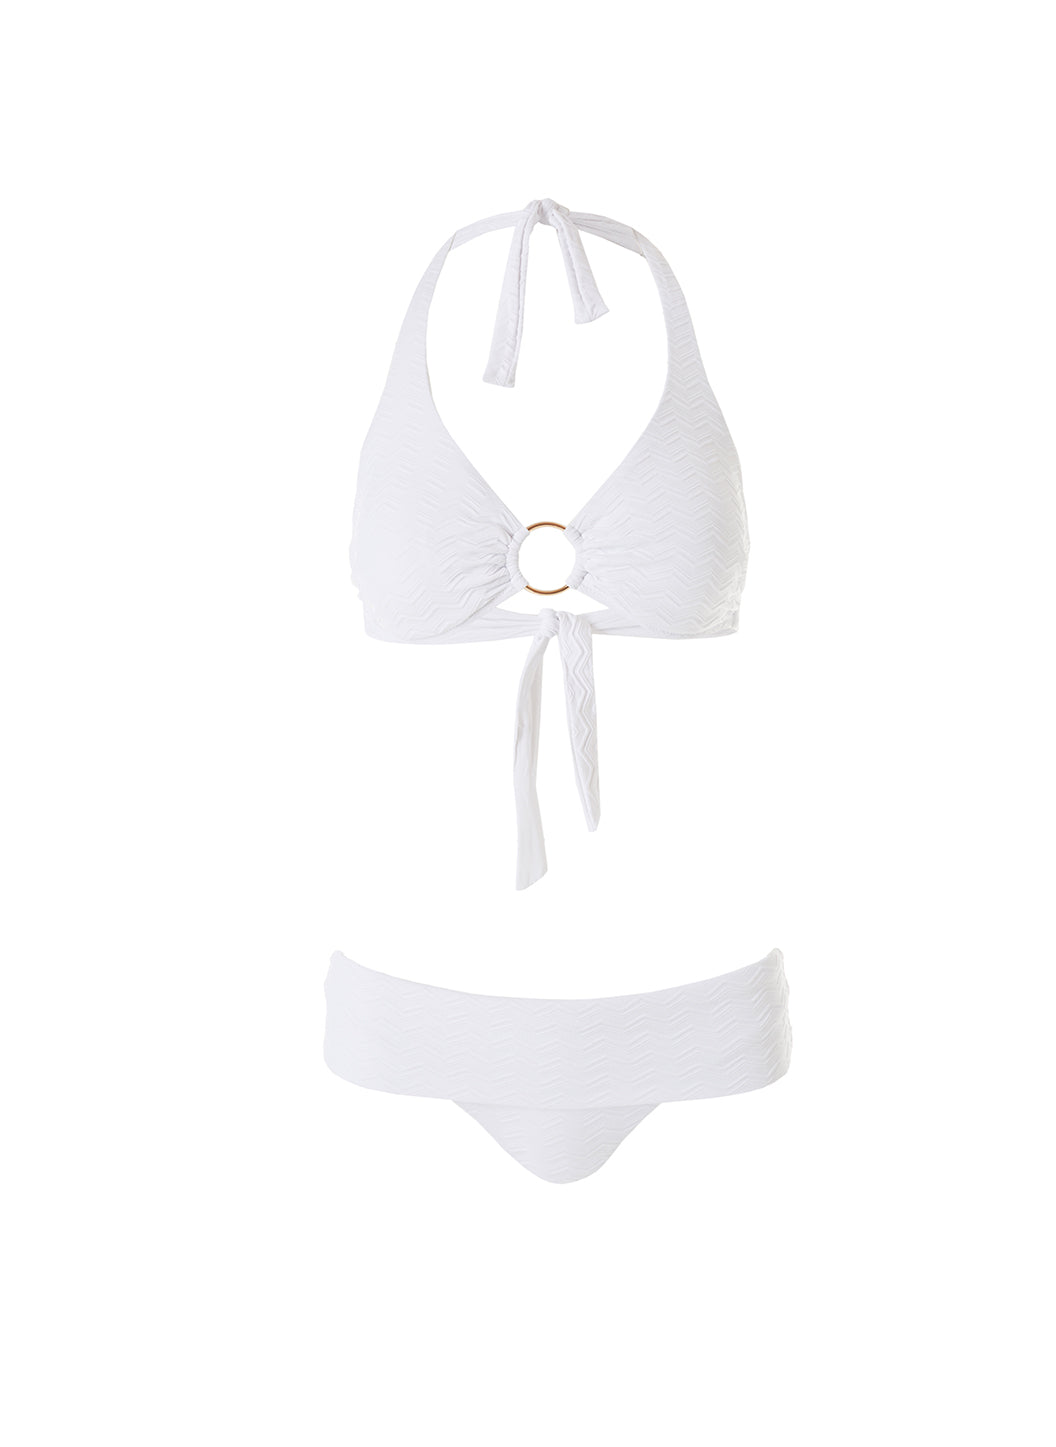 Exclusive Brussels White Zig Zag Halterneck Ring Supportive Bikini